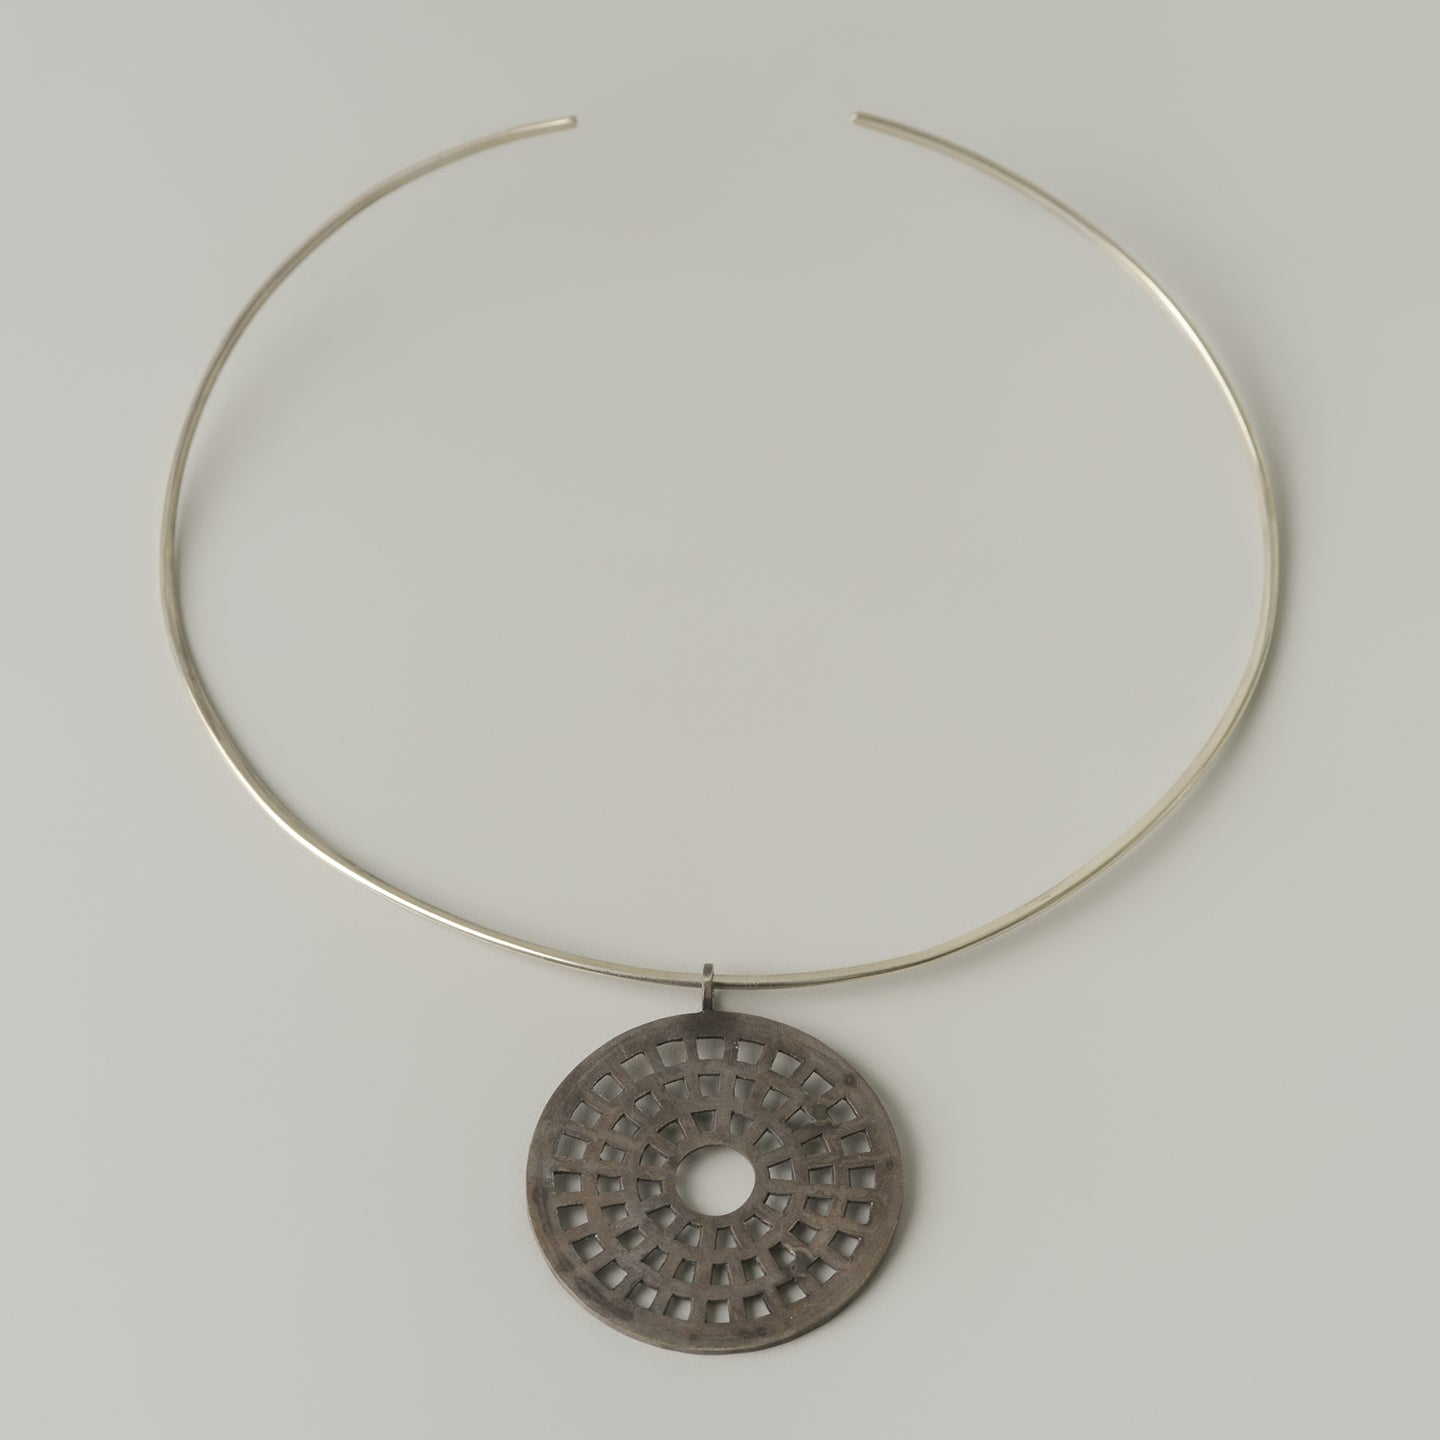 Round neckpiece (one of a kind)